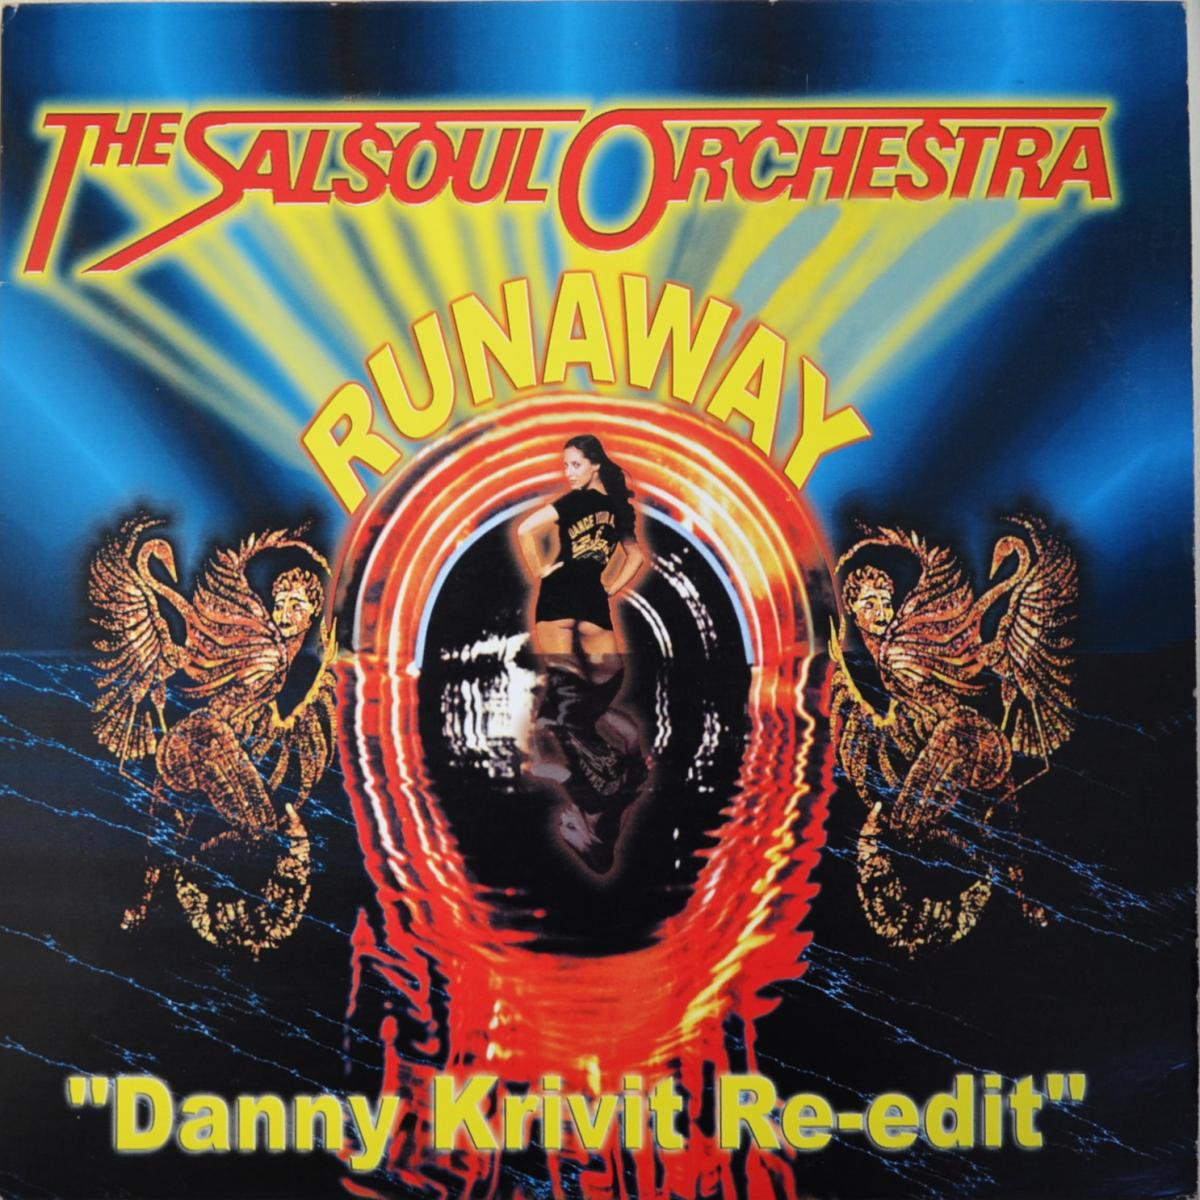 THE SALSOUL ORCHESTRA / RUNAWAY-Danny Krivit Re-Edit (12